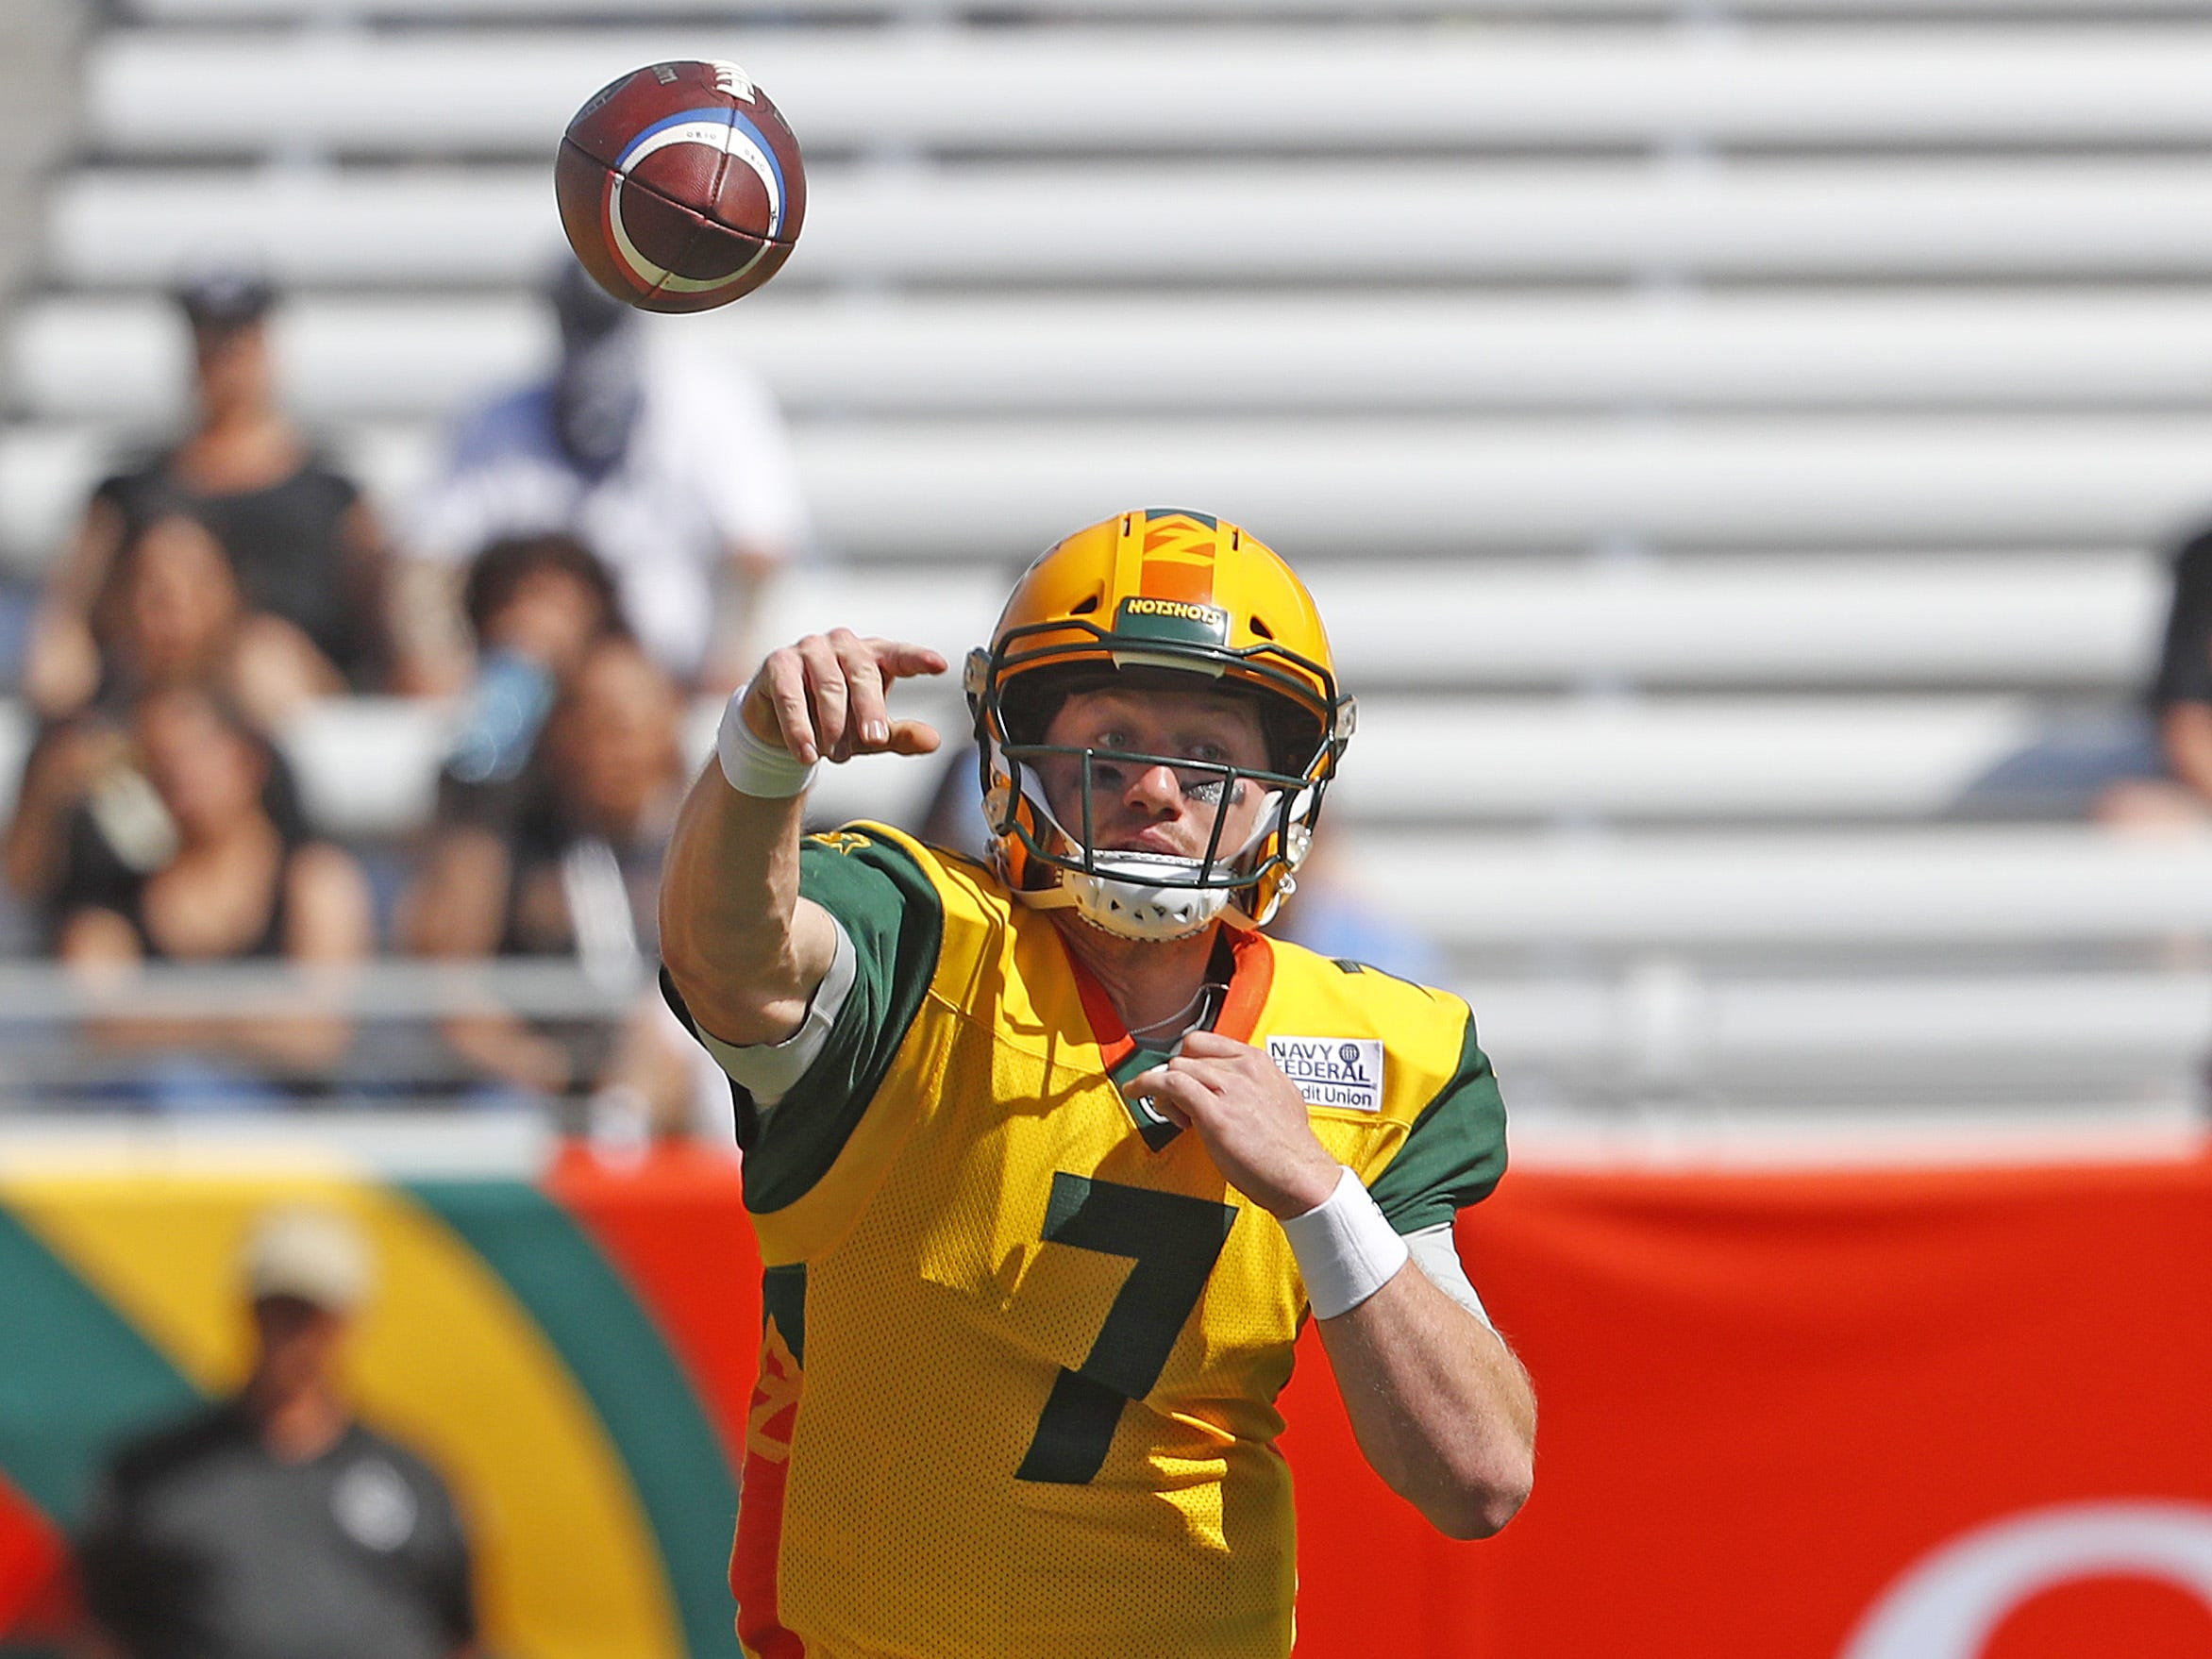 Hotshot's quarterback John Wolford (7) throws a pass during the first half at Sun Devil Stadium in Tempe, Ariz. on March 24, 2019.